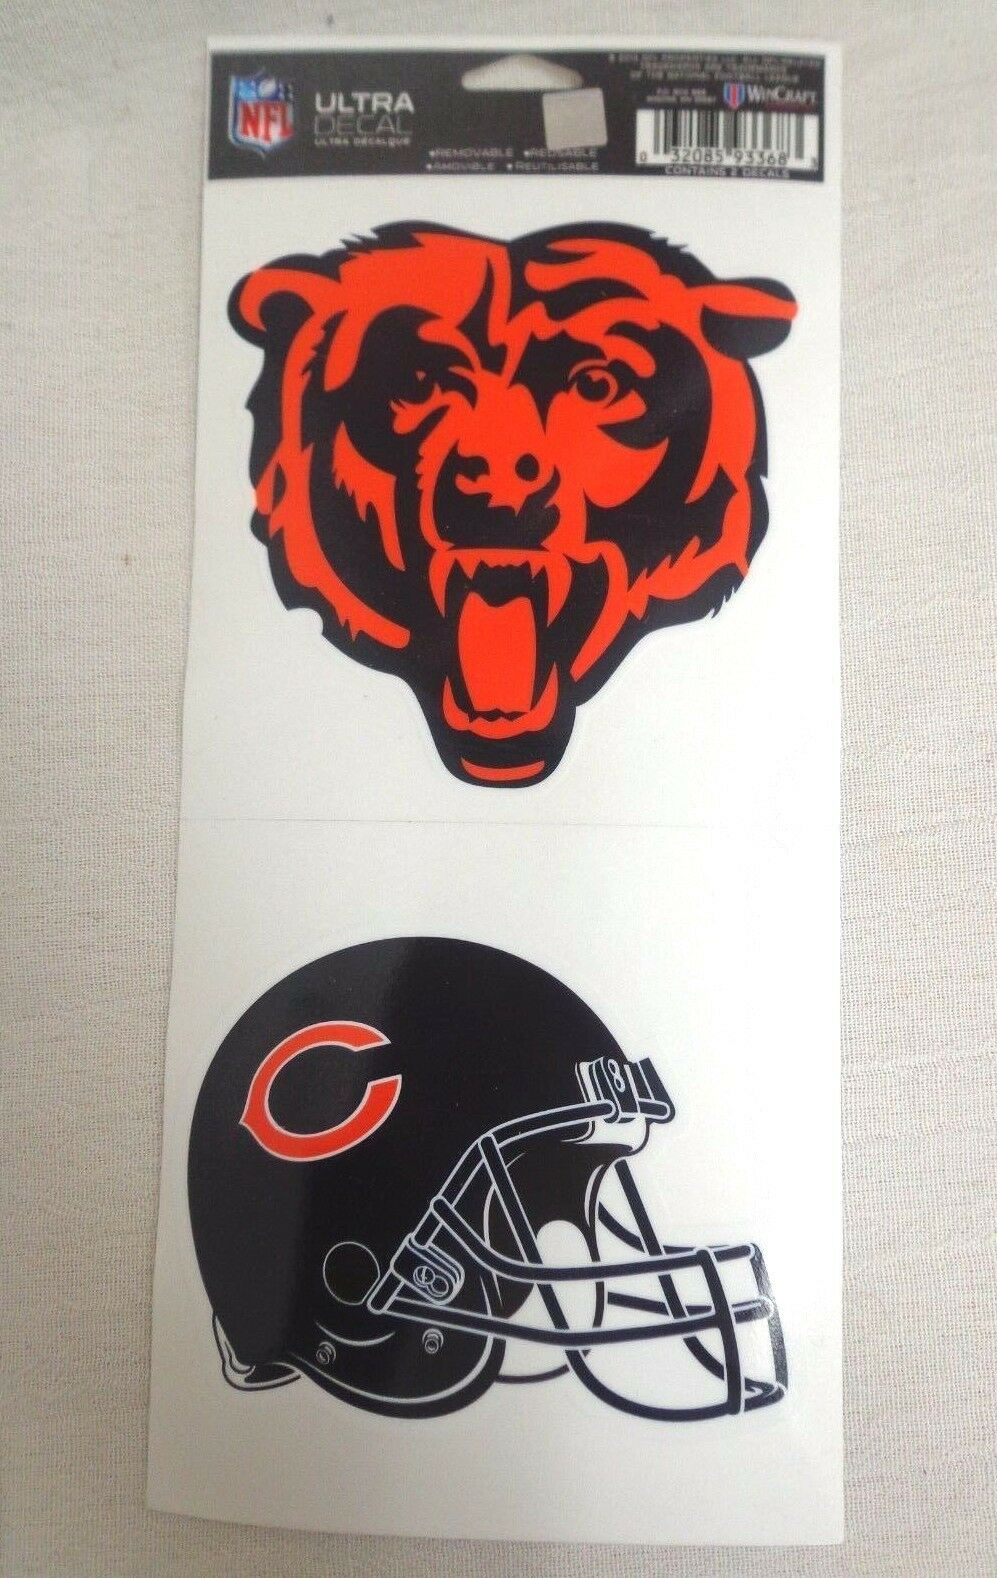 NFL Ultra Decals 2 Pack Set Removable Reusable Sticker Wincraft Chicago Bears